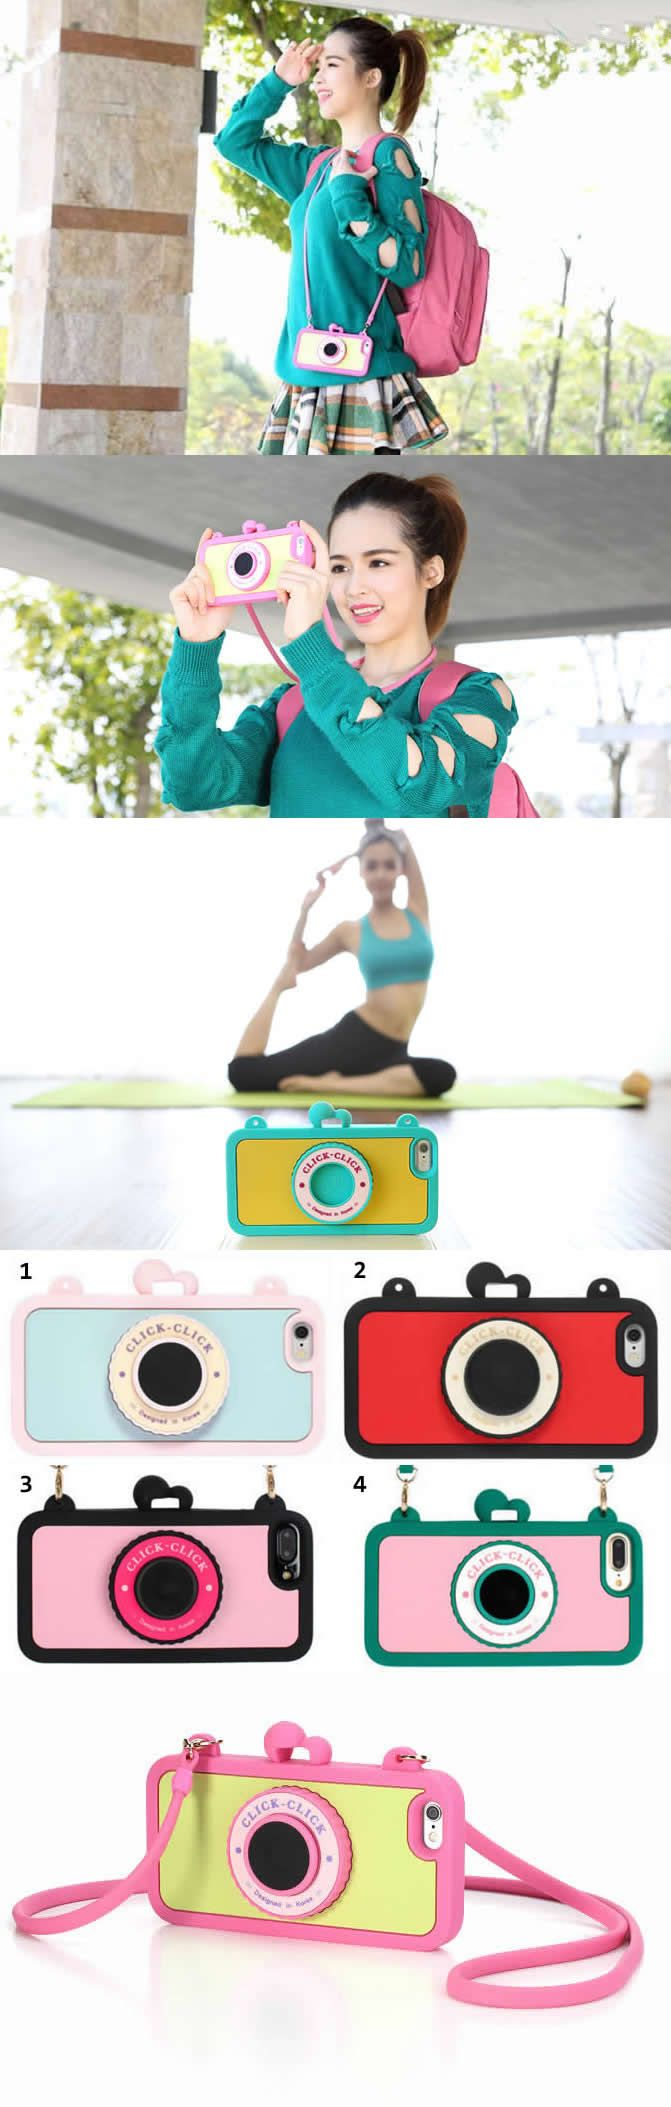 Moschino Camera Style iPhone Case Cover With Strap For iPhone 7/7 PlUS,there is a Wireless Camera Shutter Selfie Bluetooth Remote in lens